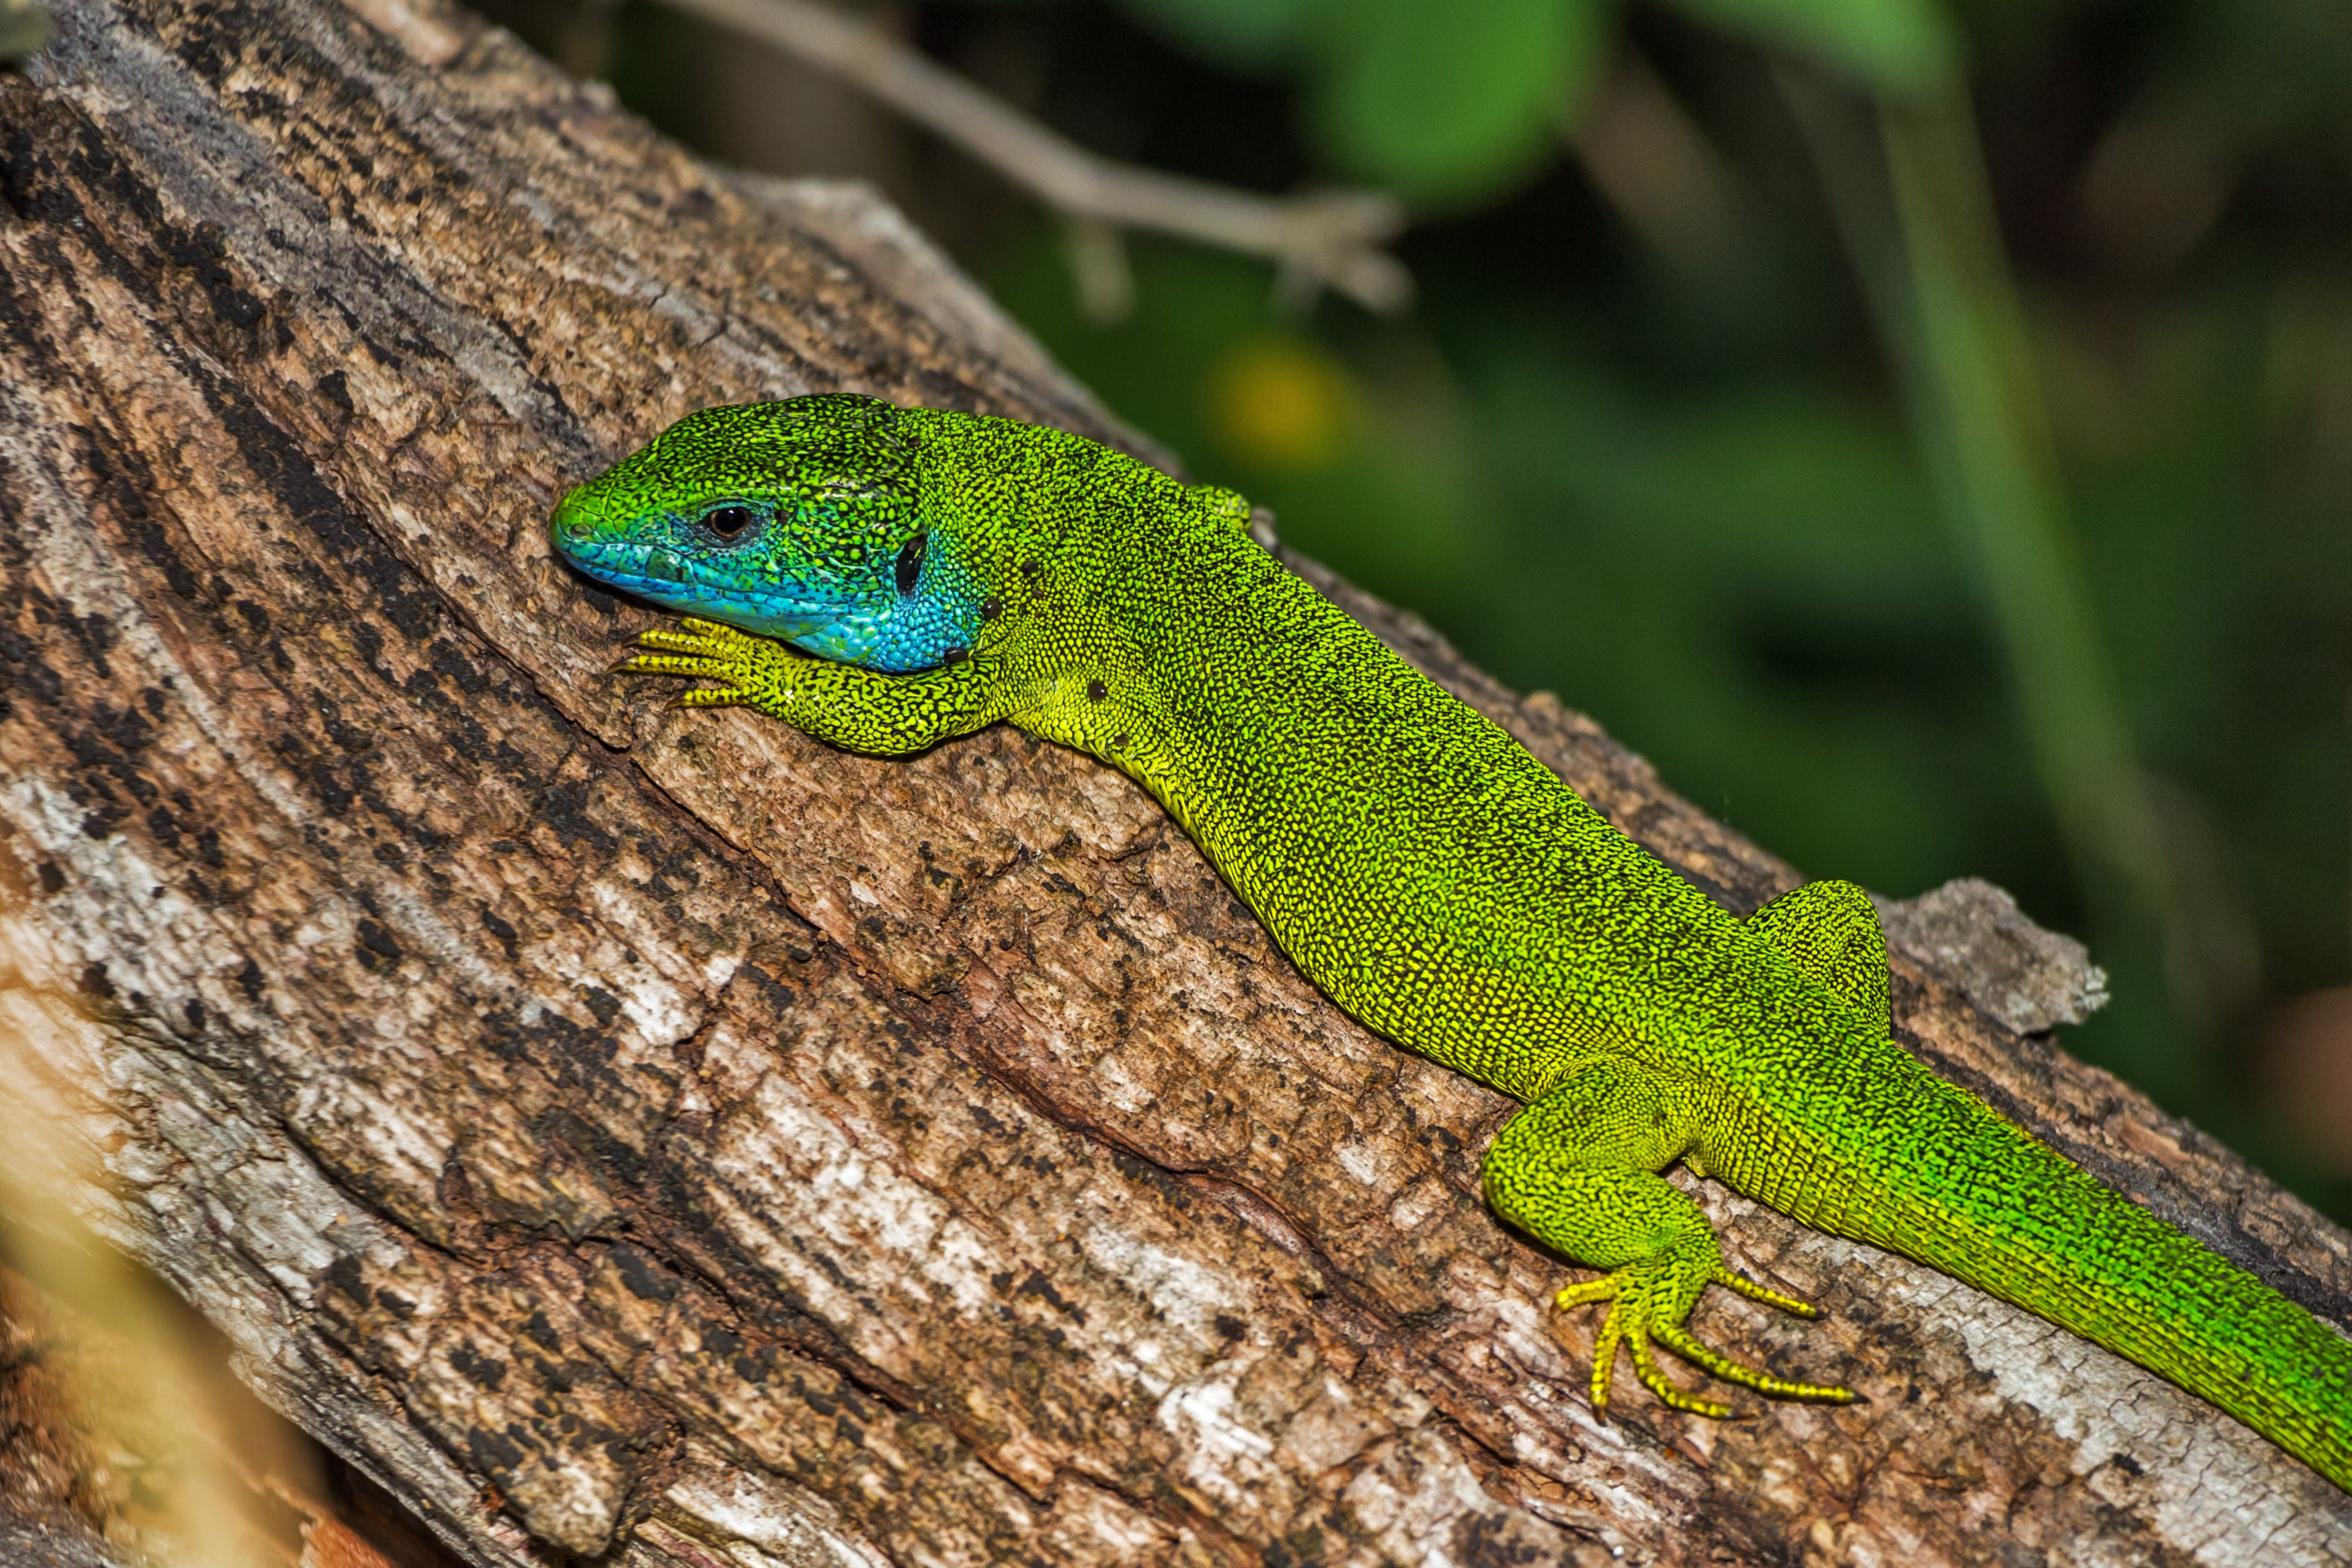 Green and Blue Lizard on Brown Wood